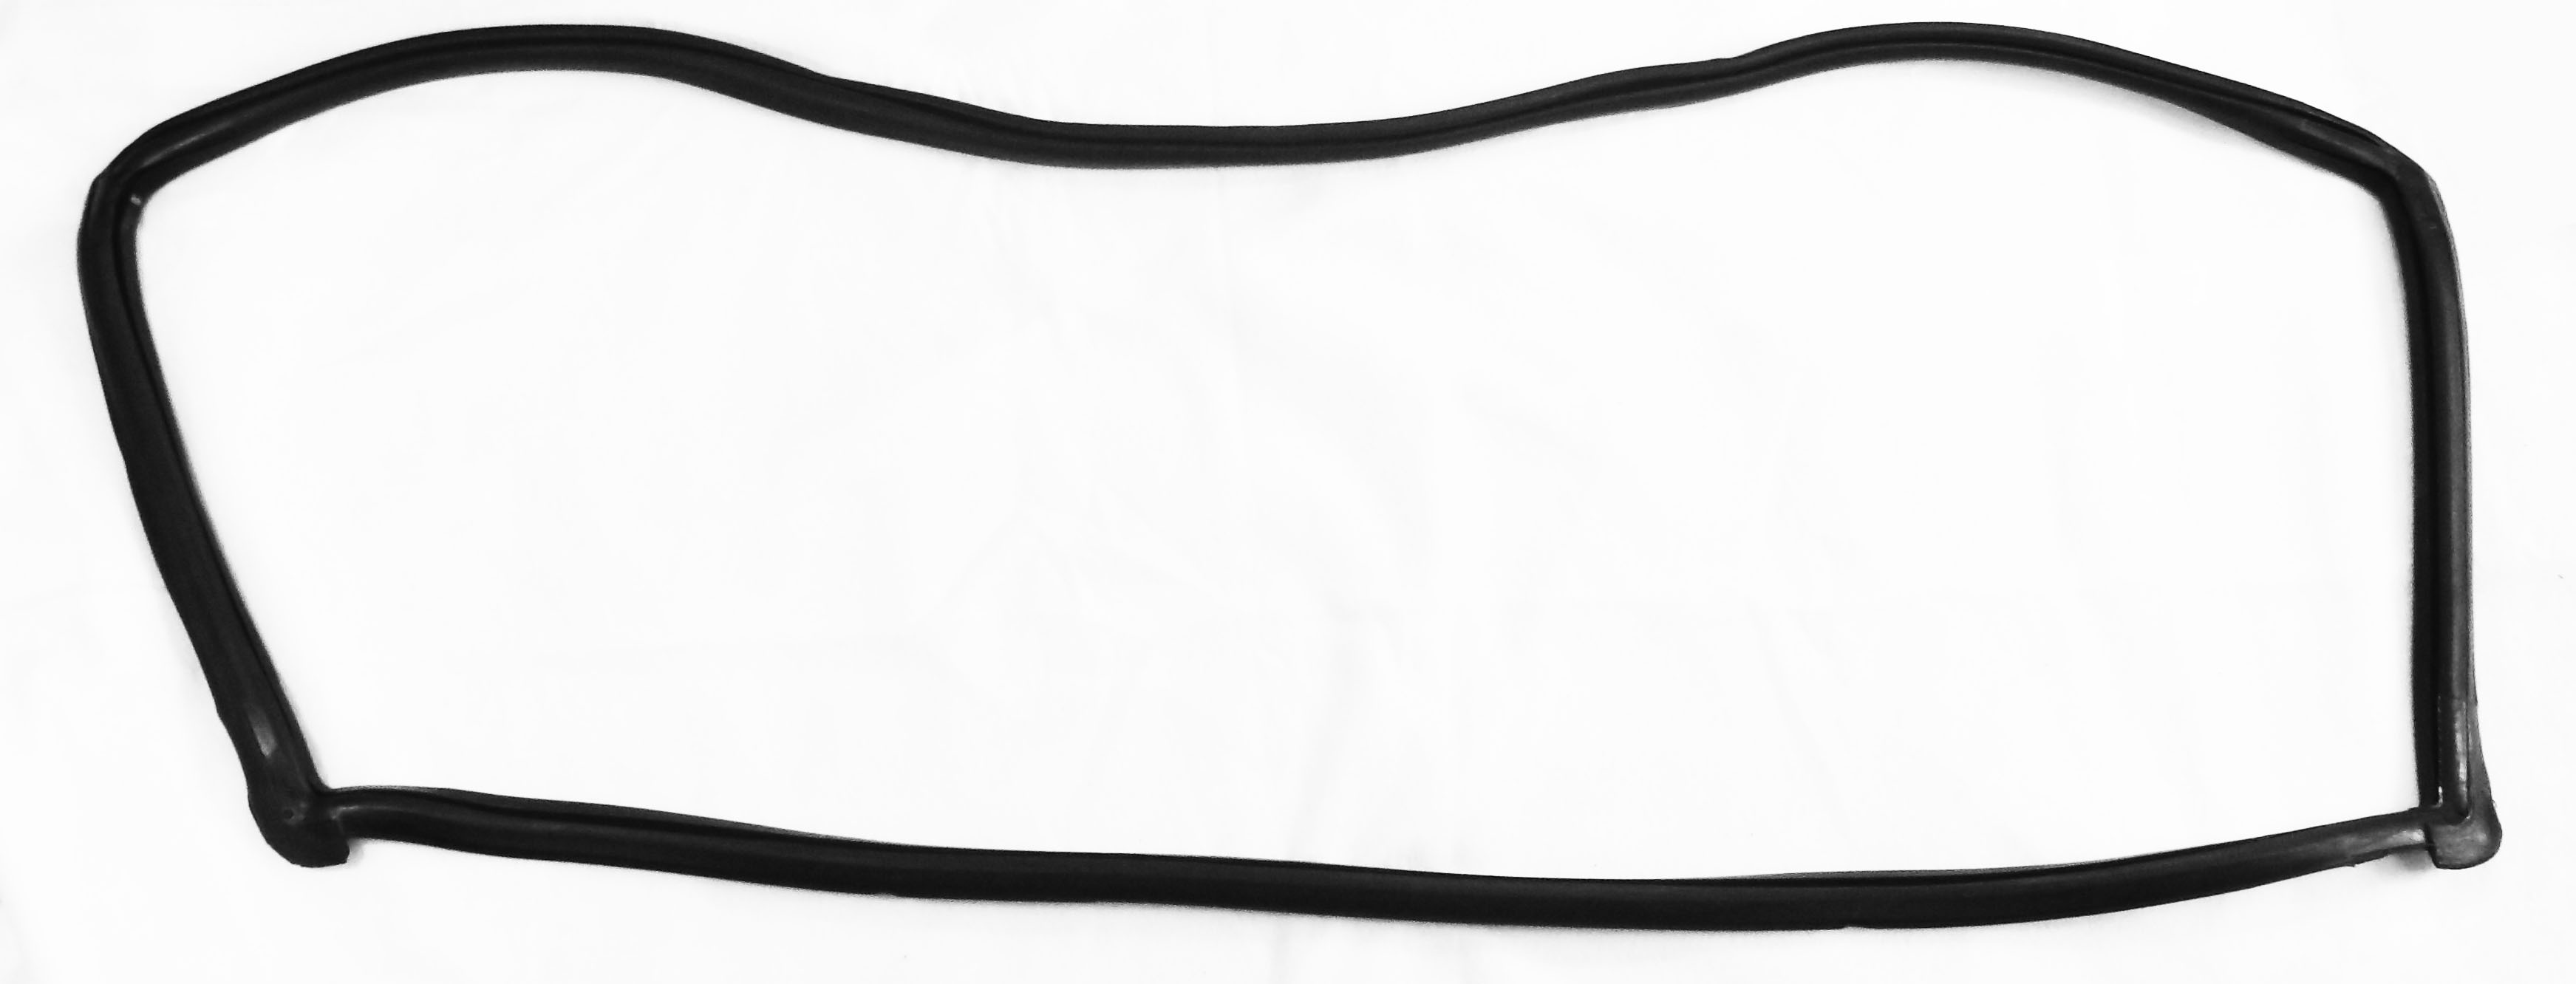 Windshield Channel For 1963-1964 Chevrolet Impala Hardtop.